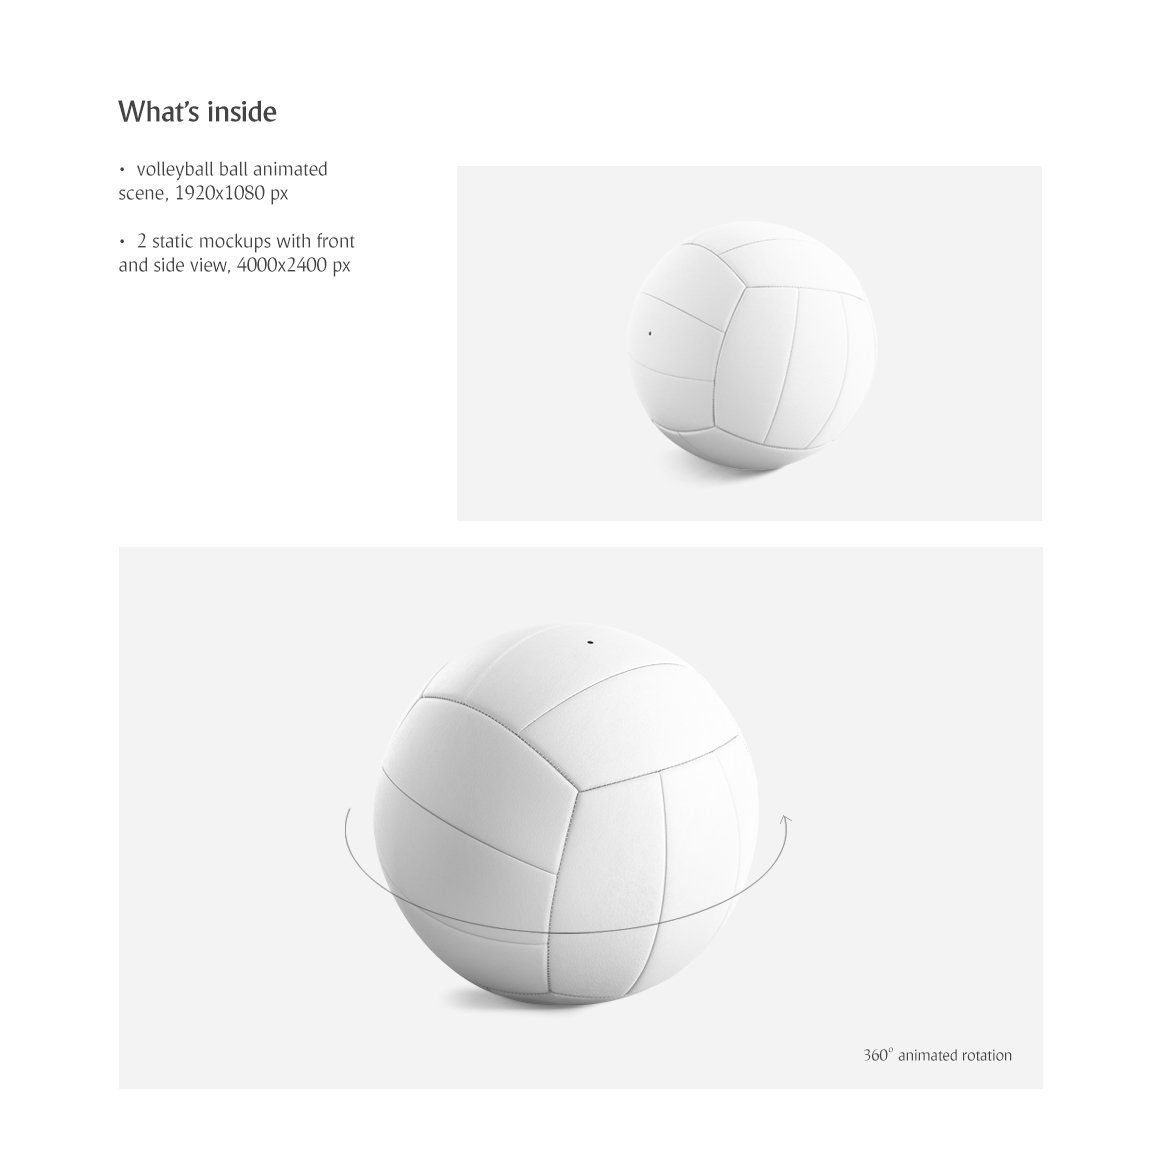 Hot Summer Mockups Bundle Volleyball Mockup Aesthetic Template